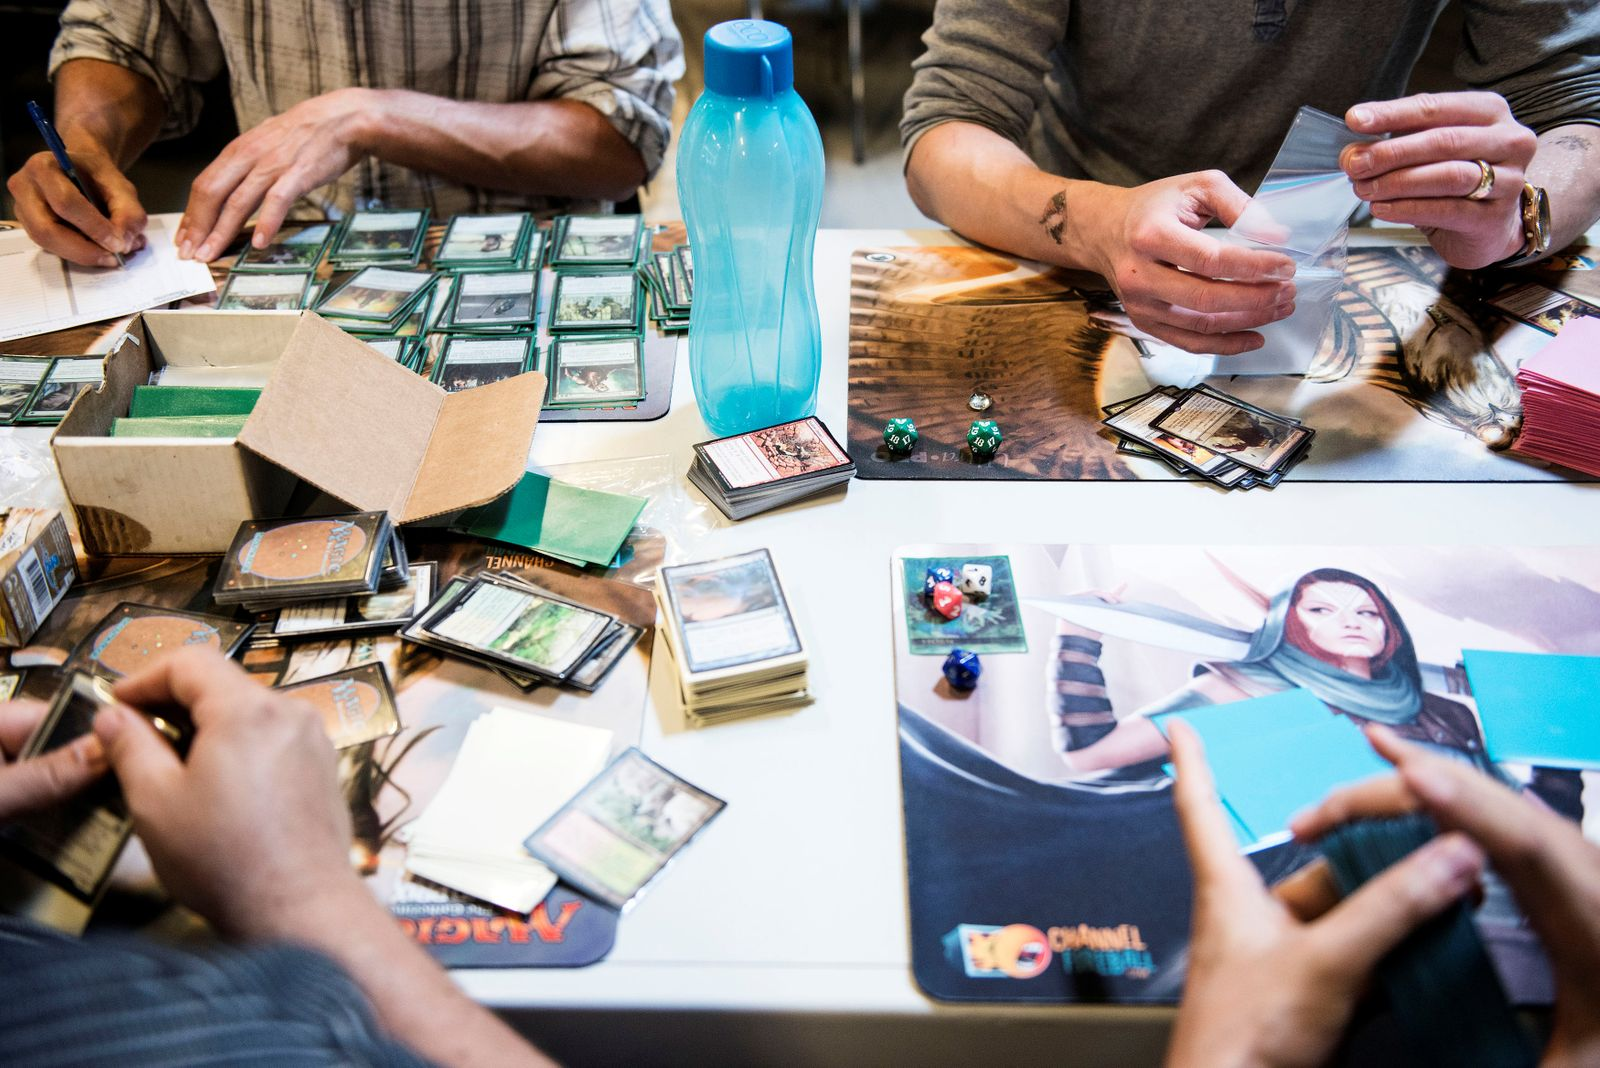 Participants in this weekend's major Magic Card Tournament play at the game tables at the Bella Center in Copenhagen